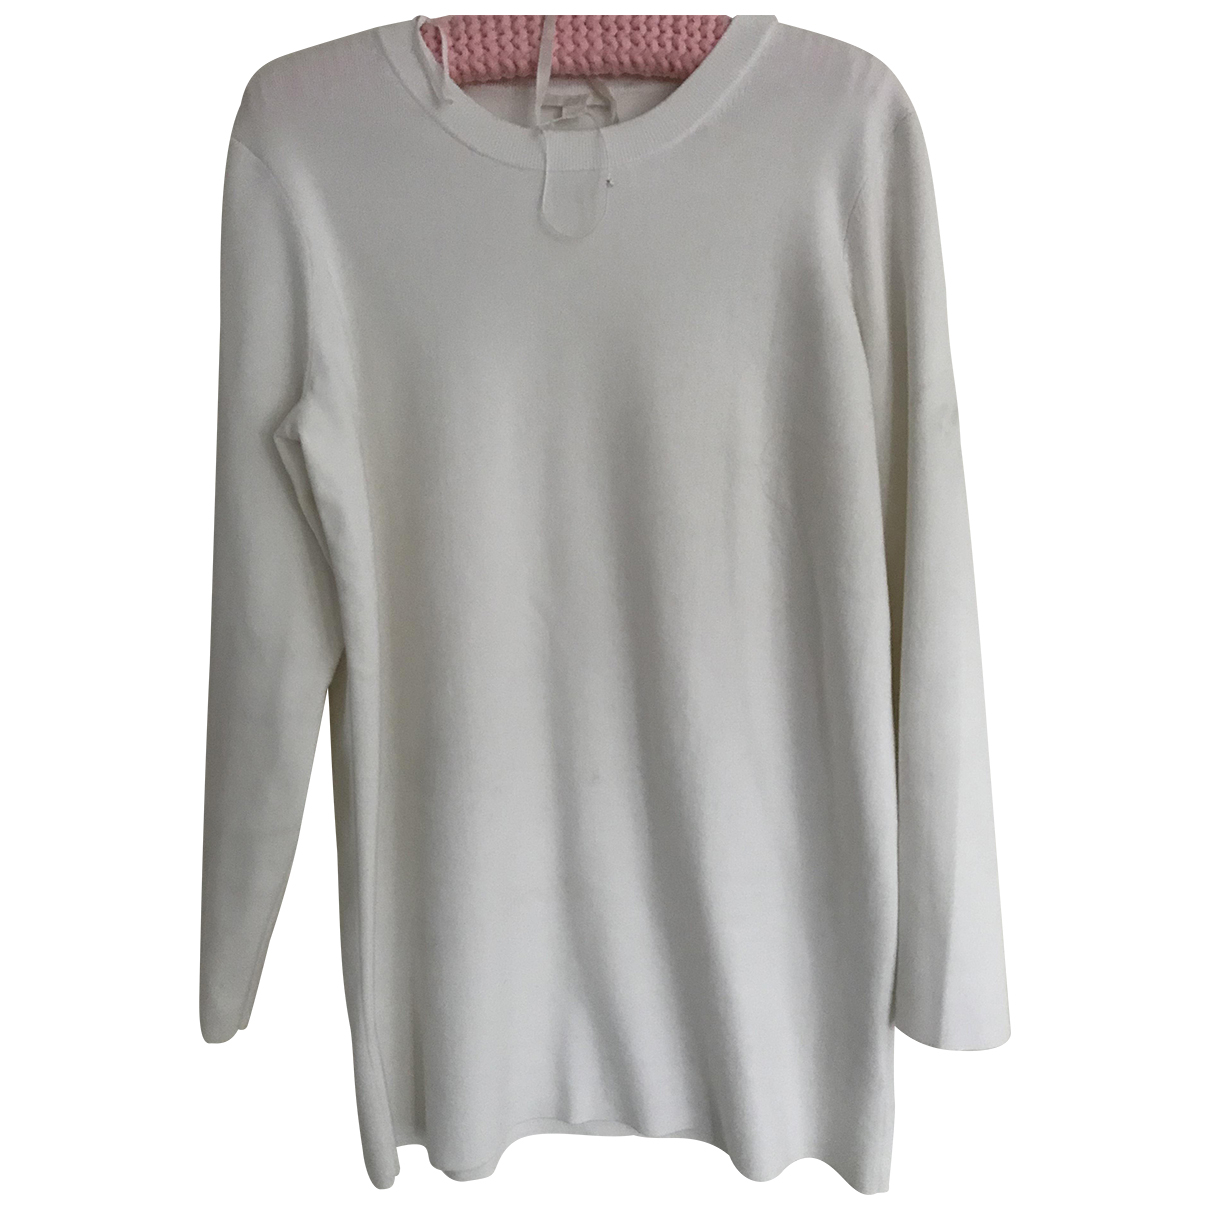 Cos \N Ecru Cotton Knitwear for Women 12 UK